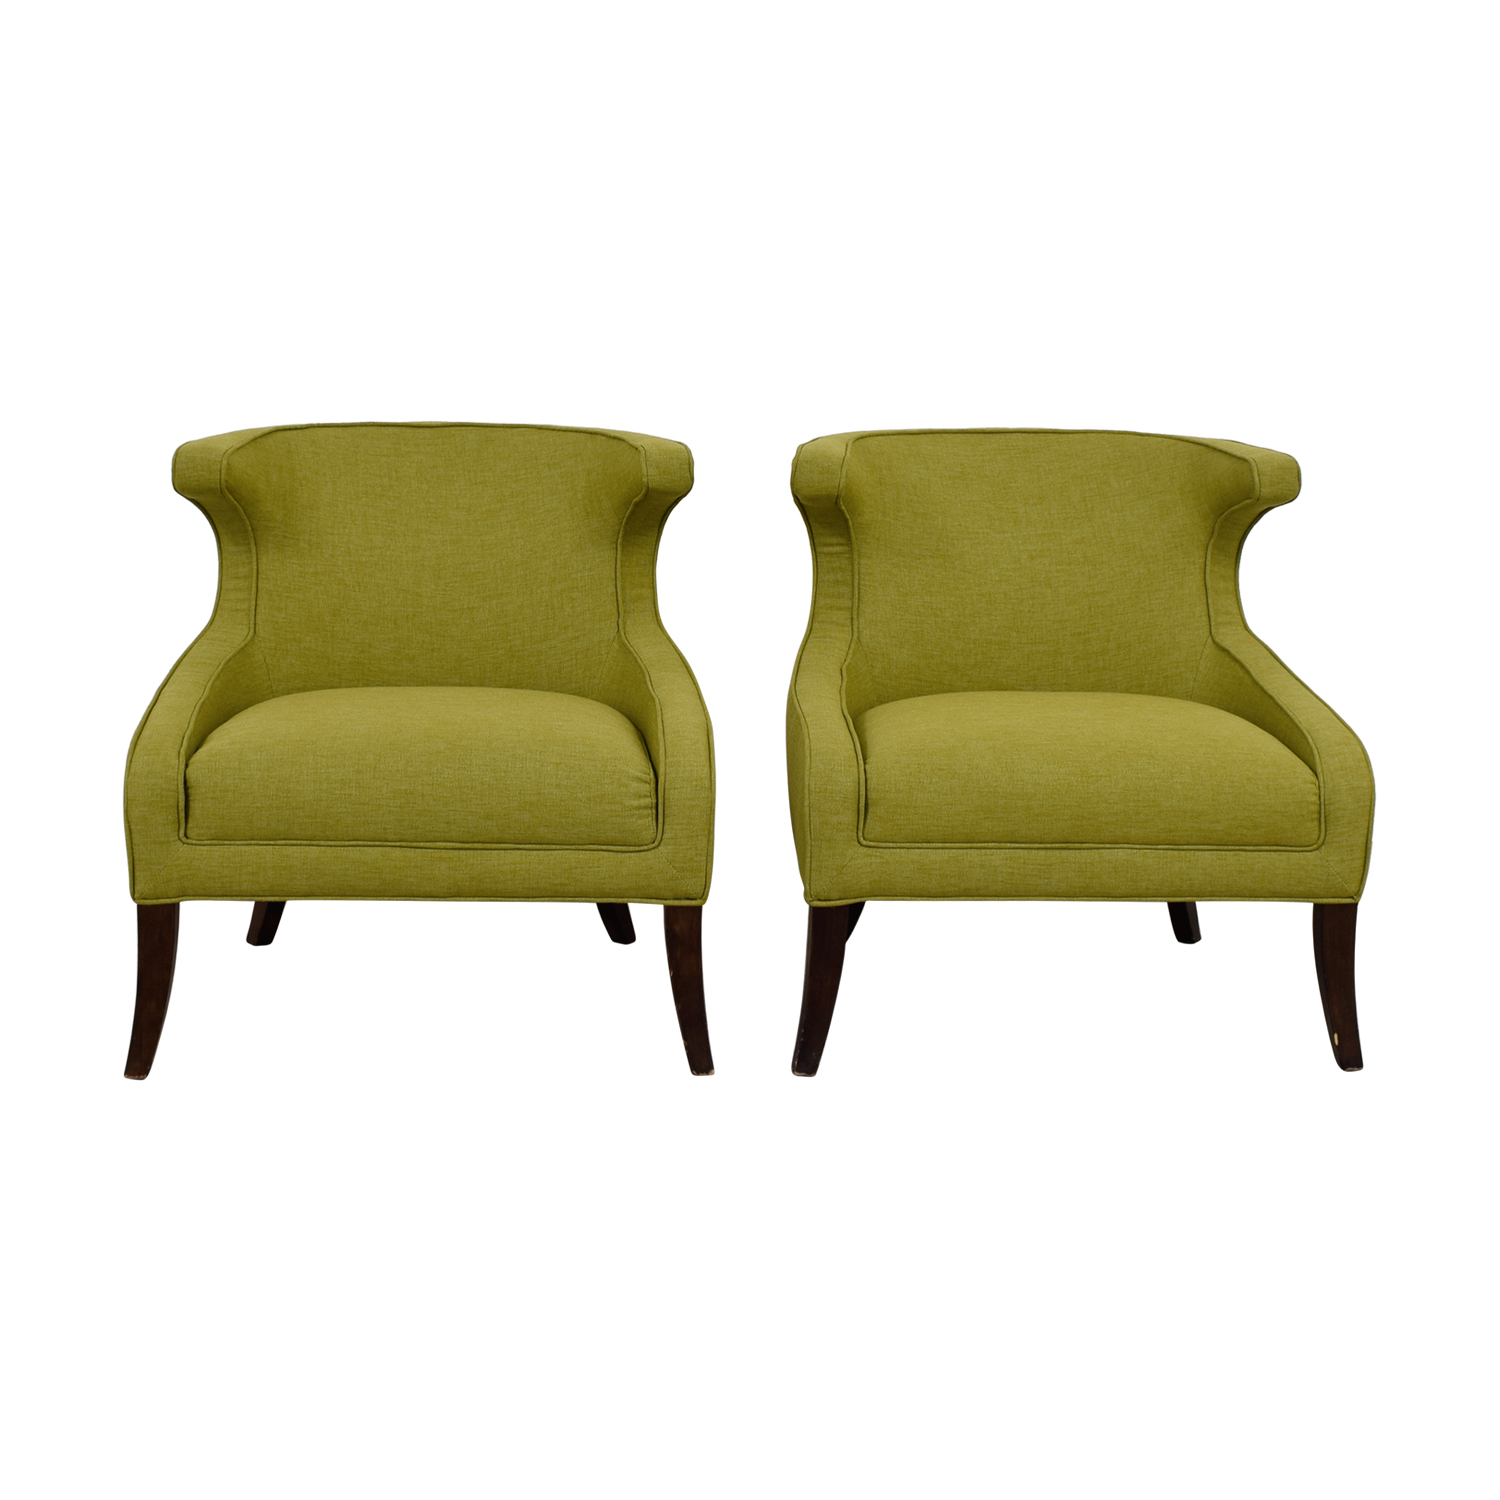 Sunpan Elliot Green Accent Chairs Sunpan